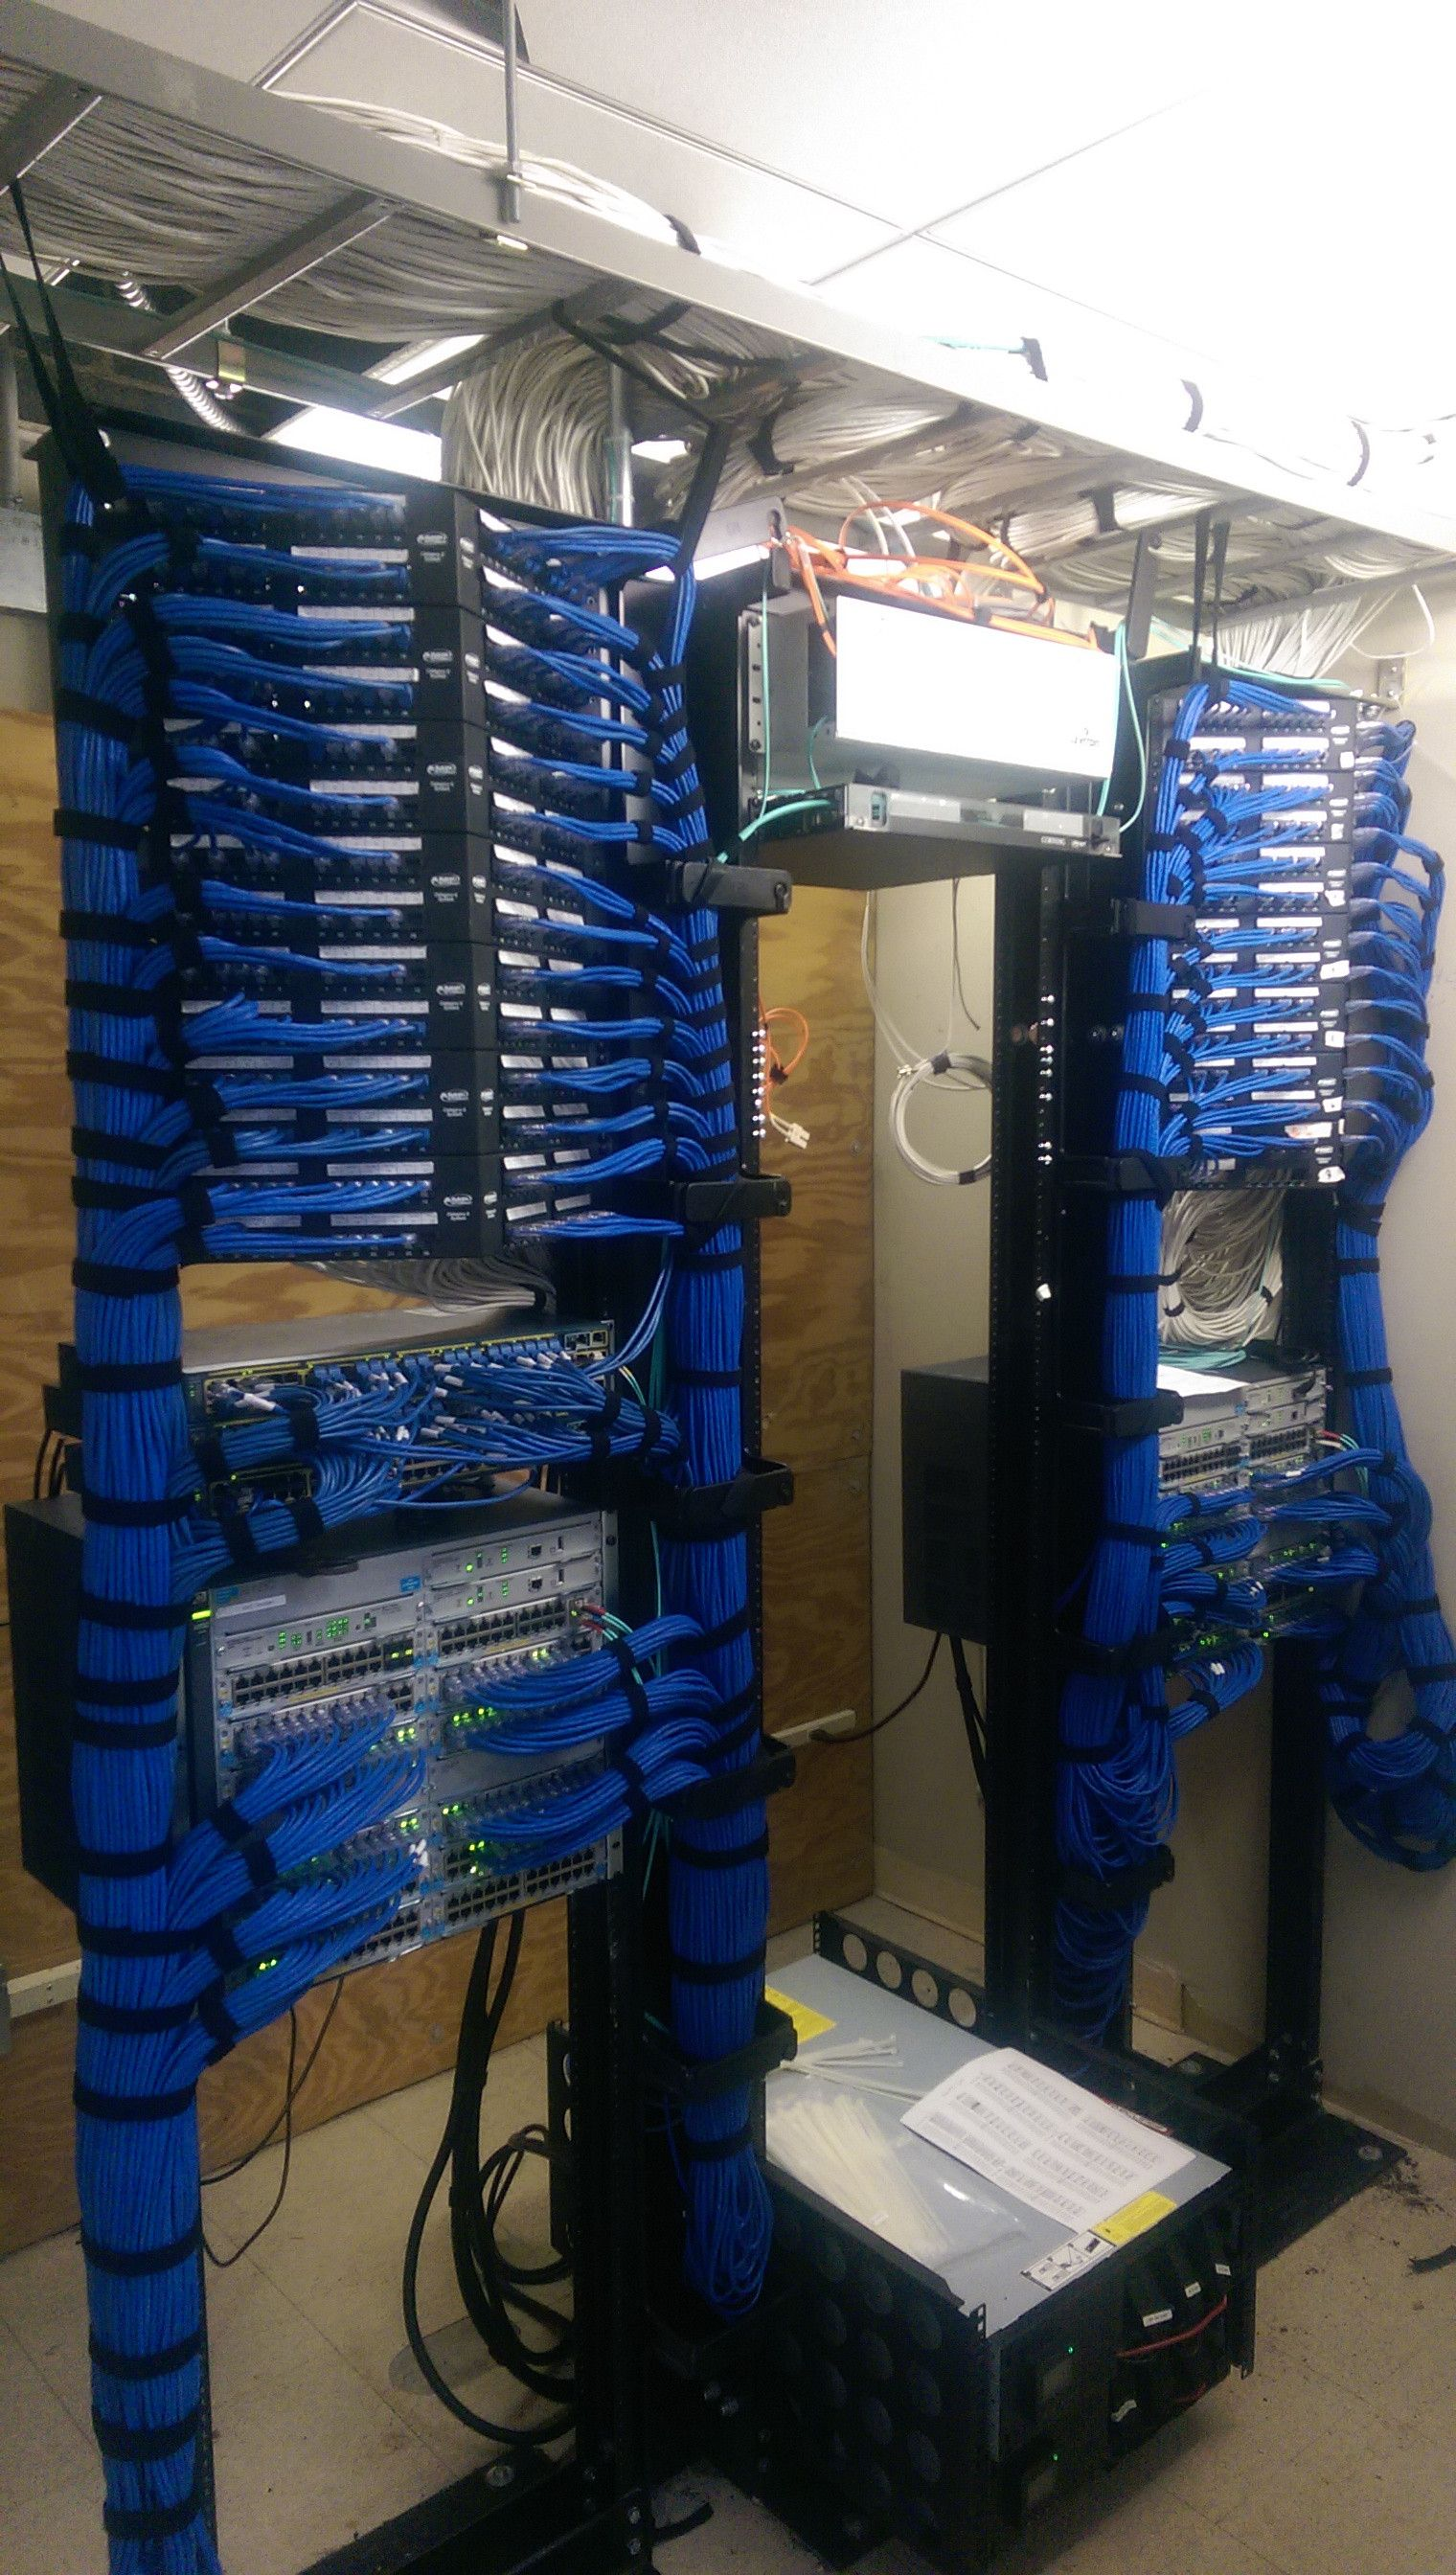 Cable Job Management Structured Cabling It Network Data Wiring Panel Running A Cisco Switch Cabinet Into Patch Panels Servers Between The Racks